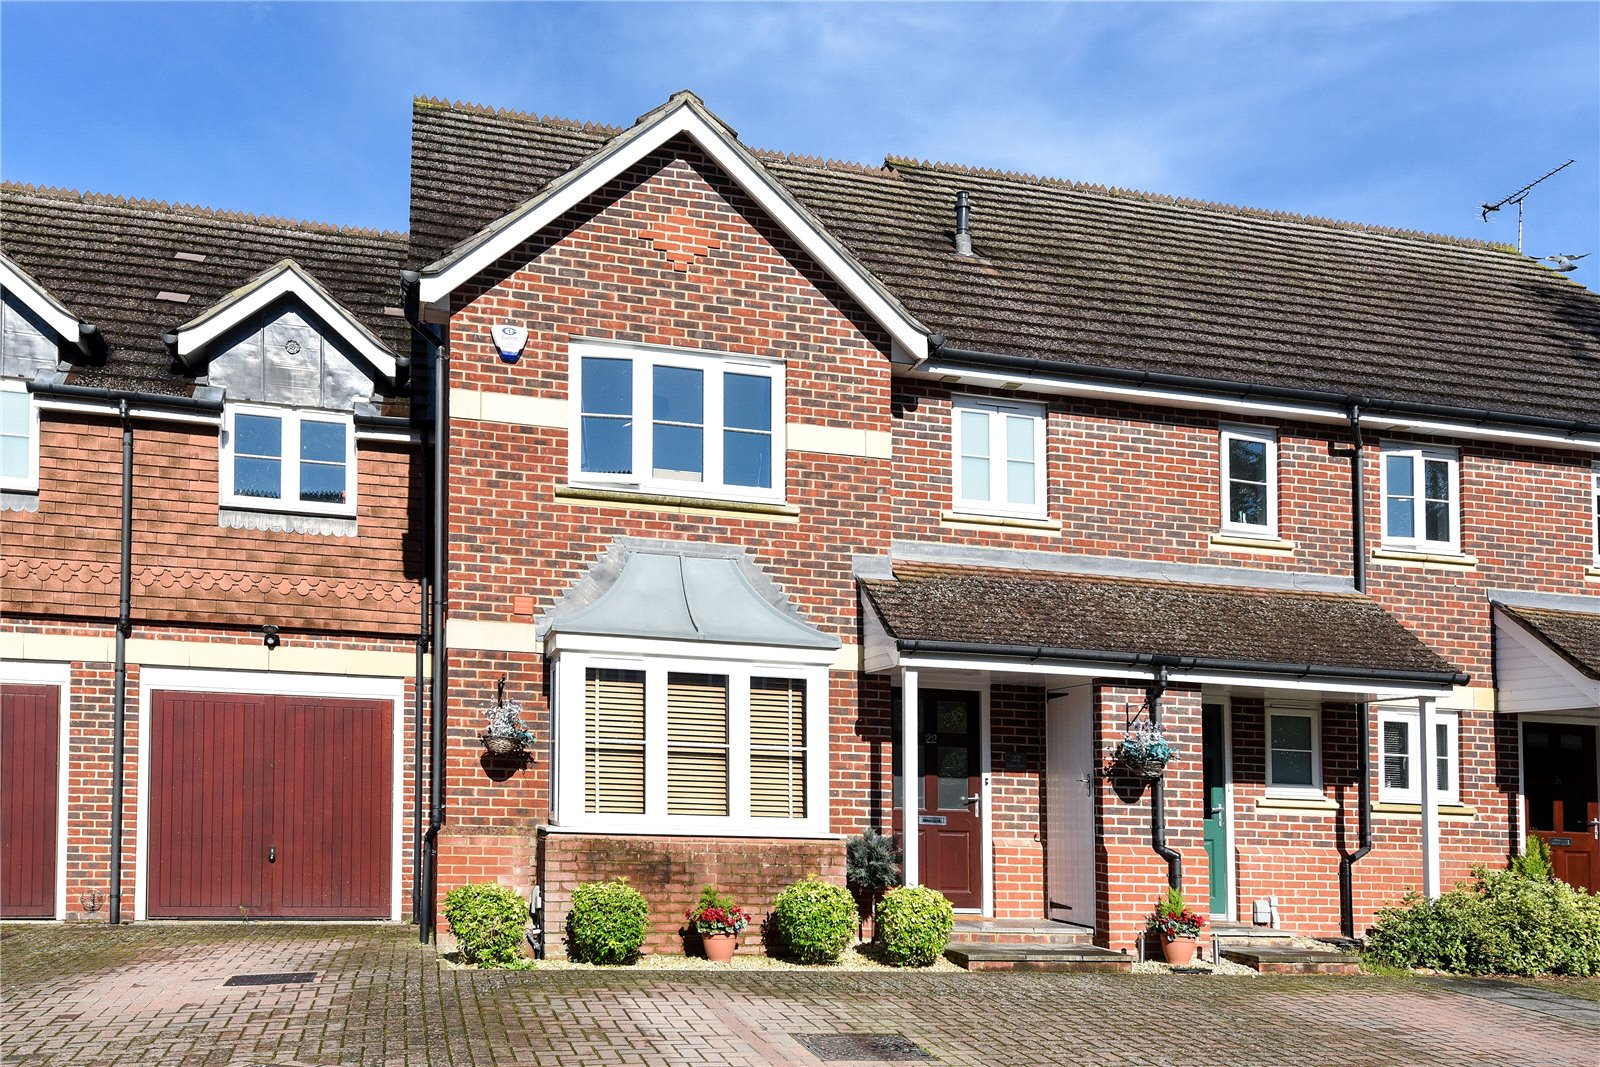 4 Bedrooms Town House for sale in Dowles Green, Wokingham, Berkshire, RG40